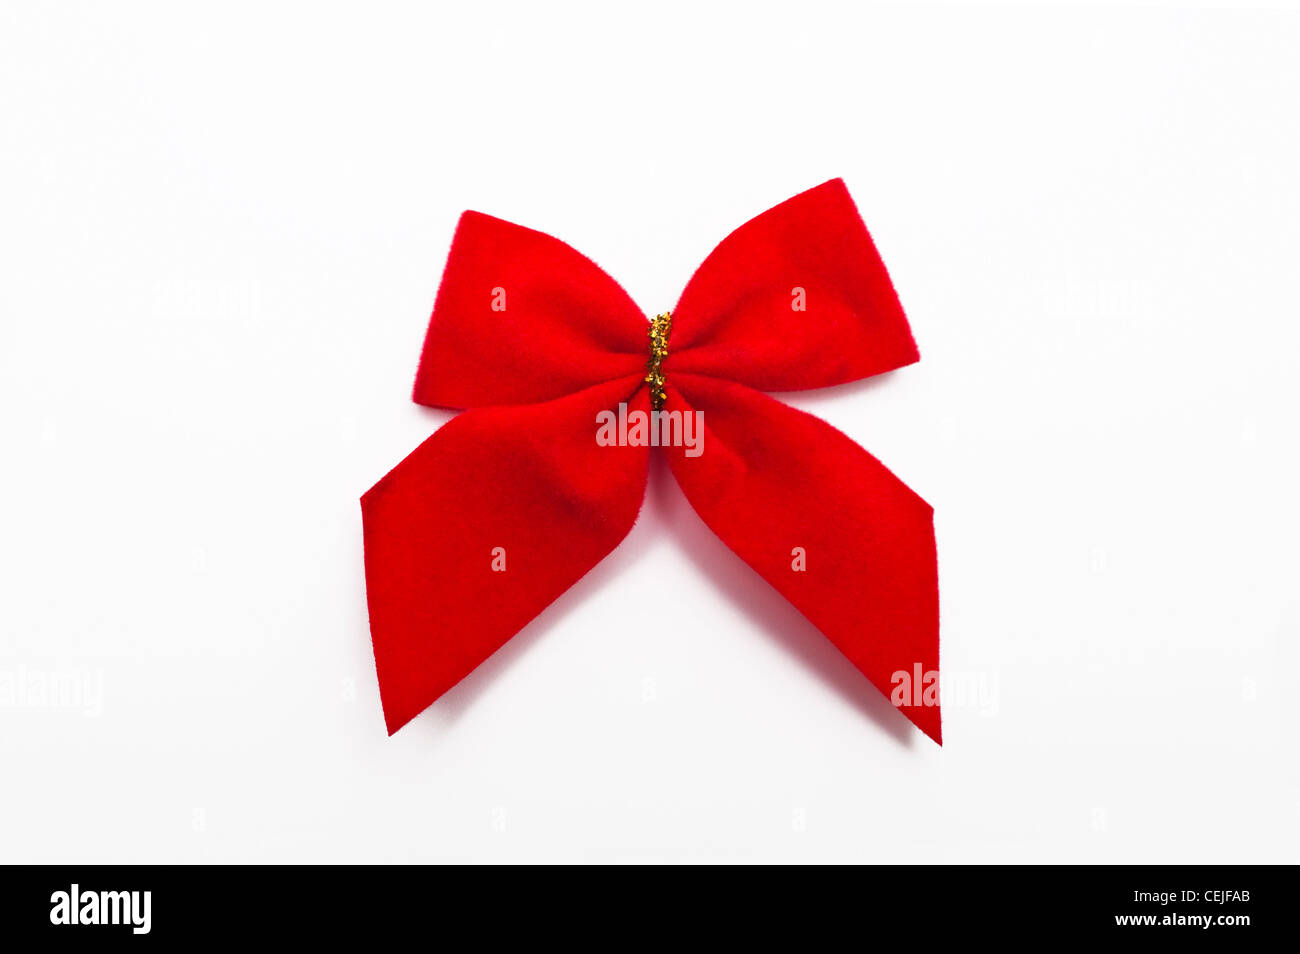 A red ribbon bow - Stock Image